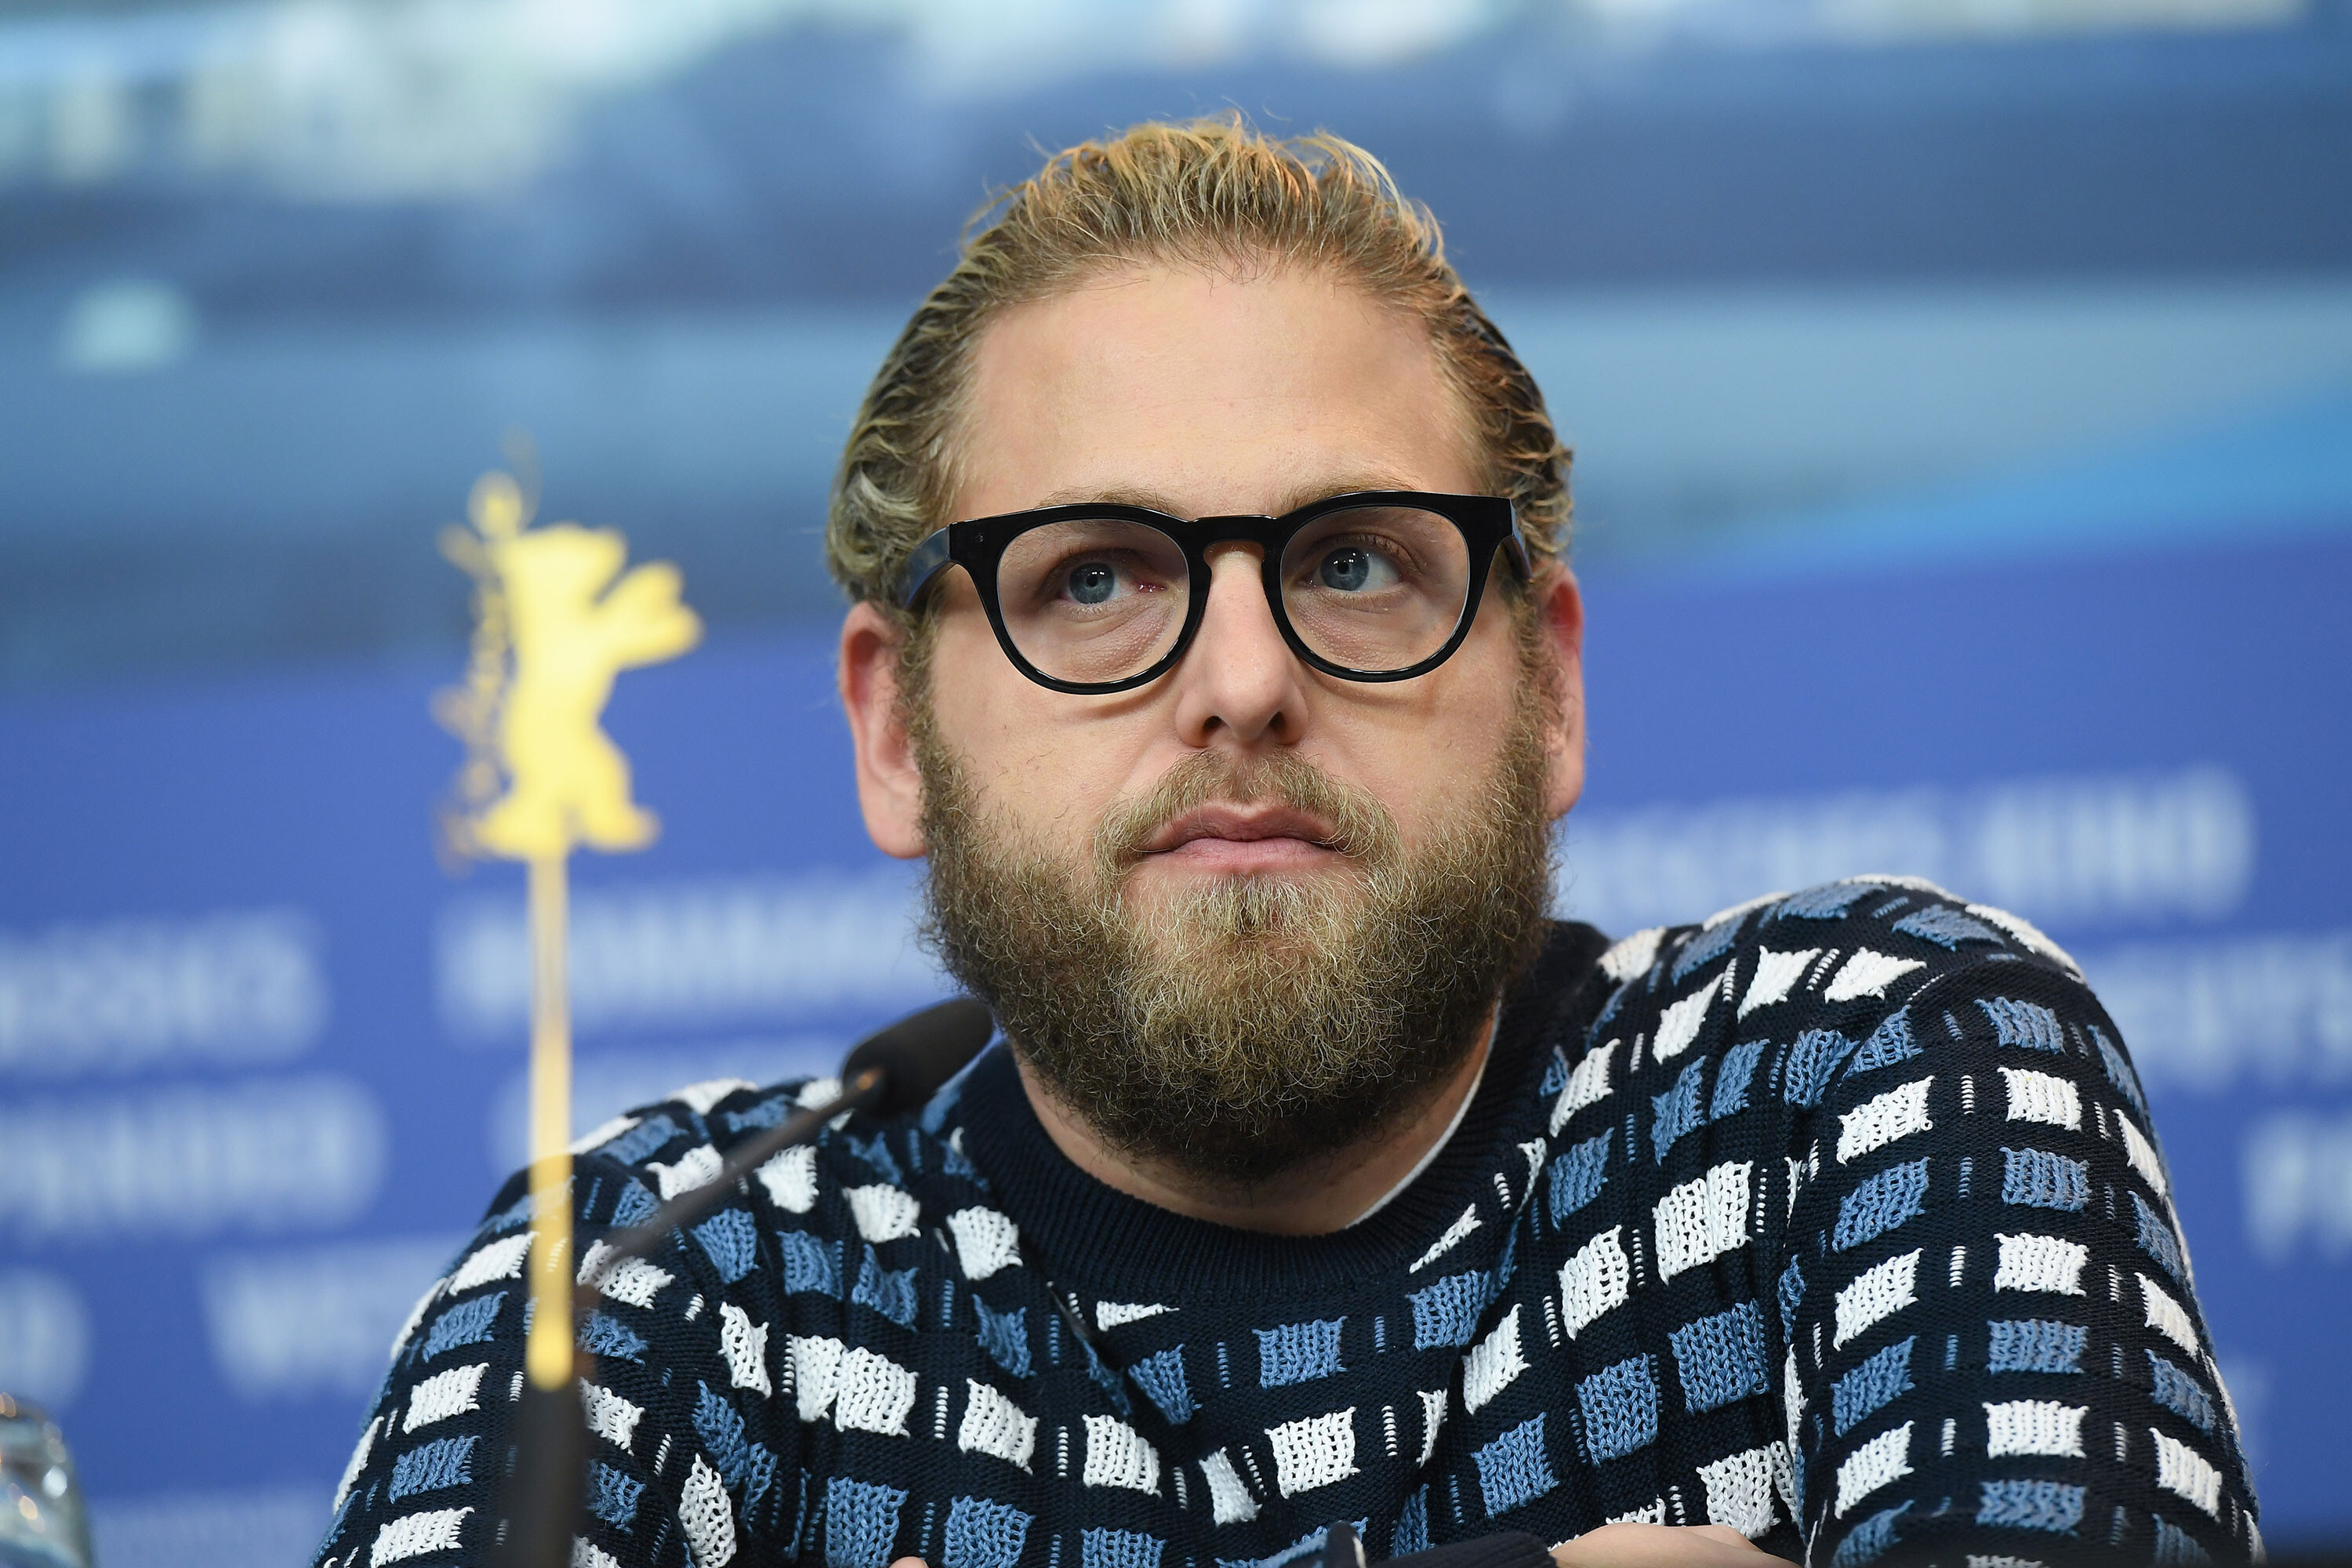 'It's not helpful': Jonah Hill asks fans not to comment on his body